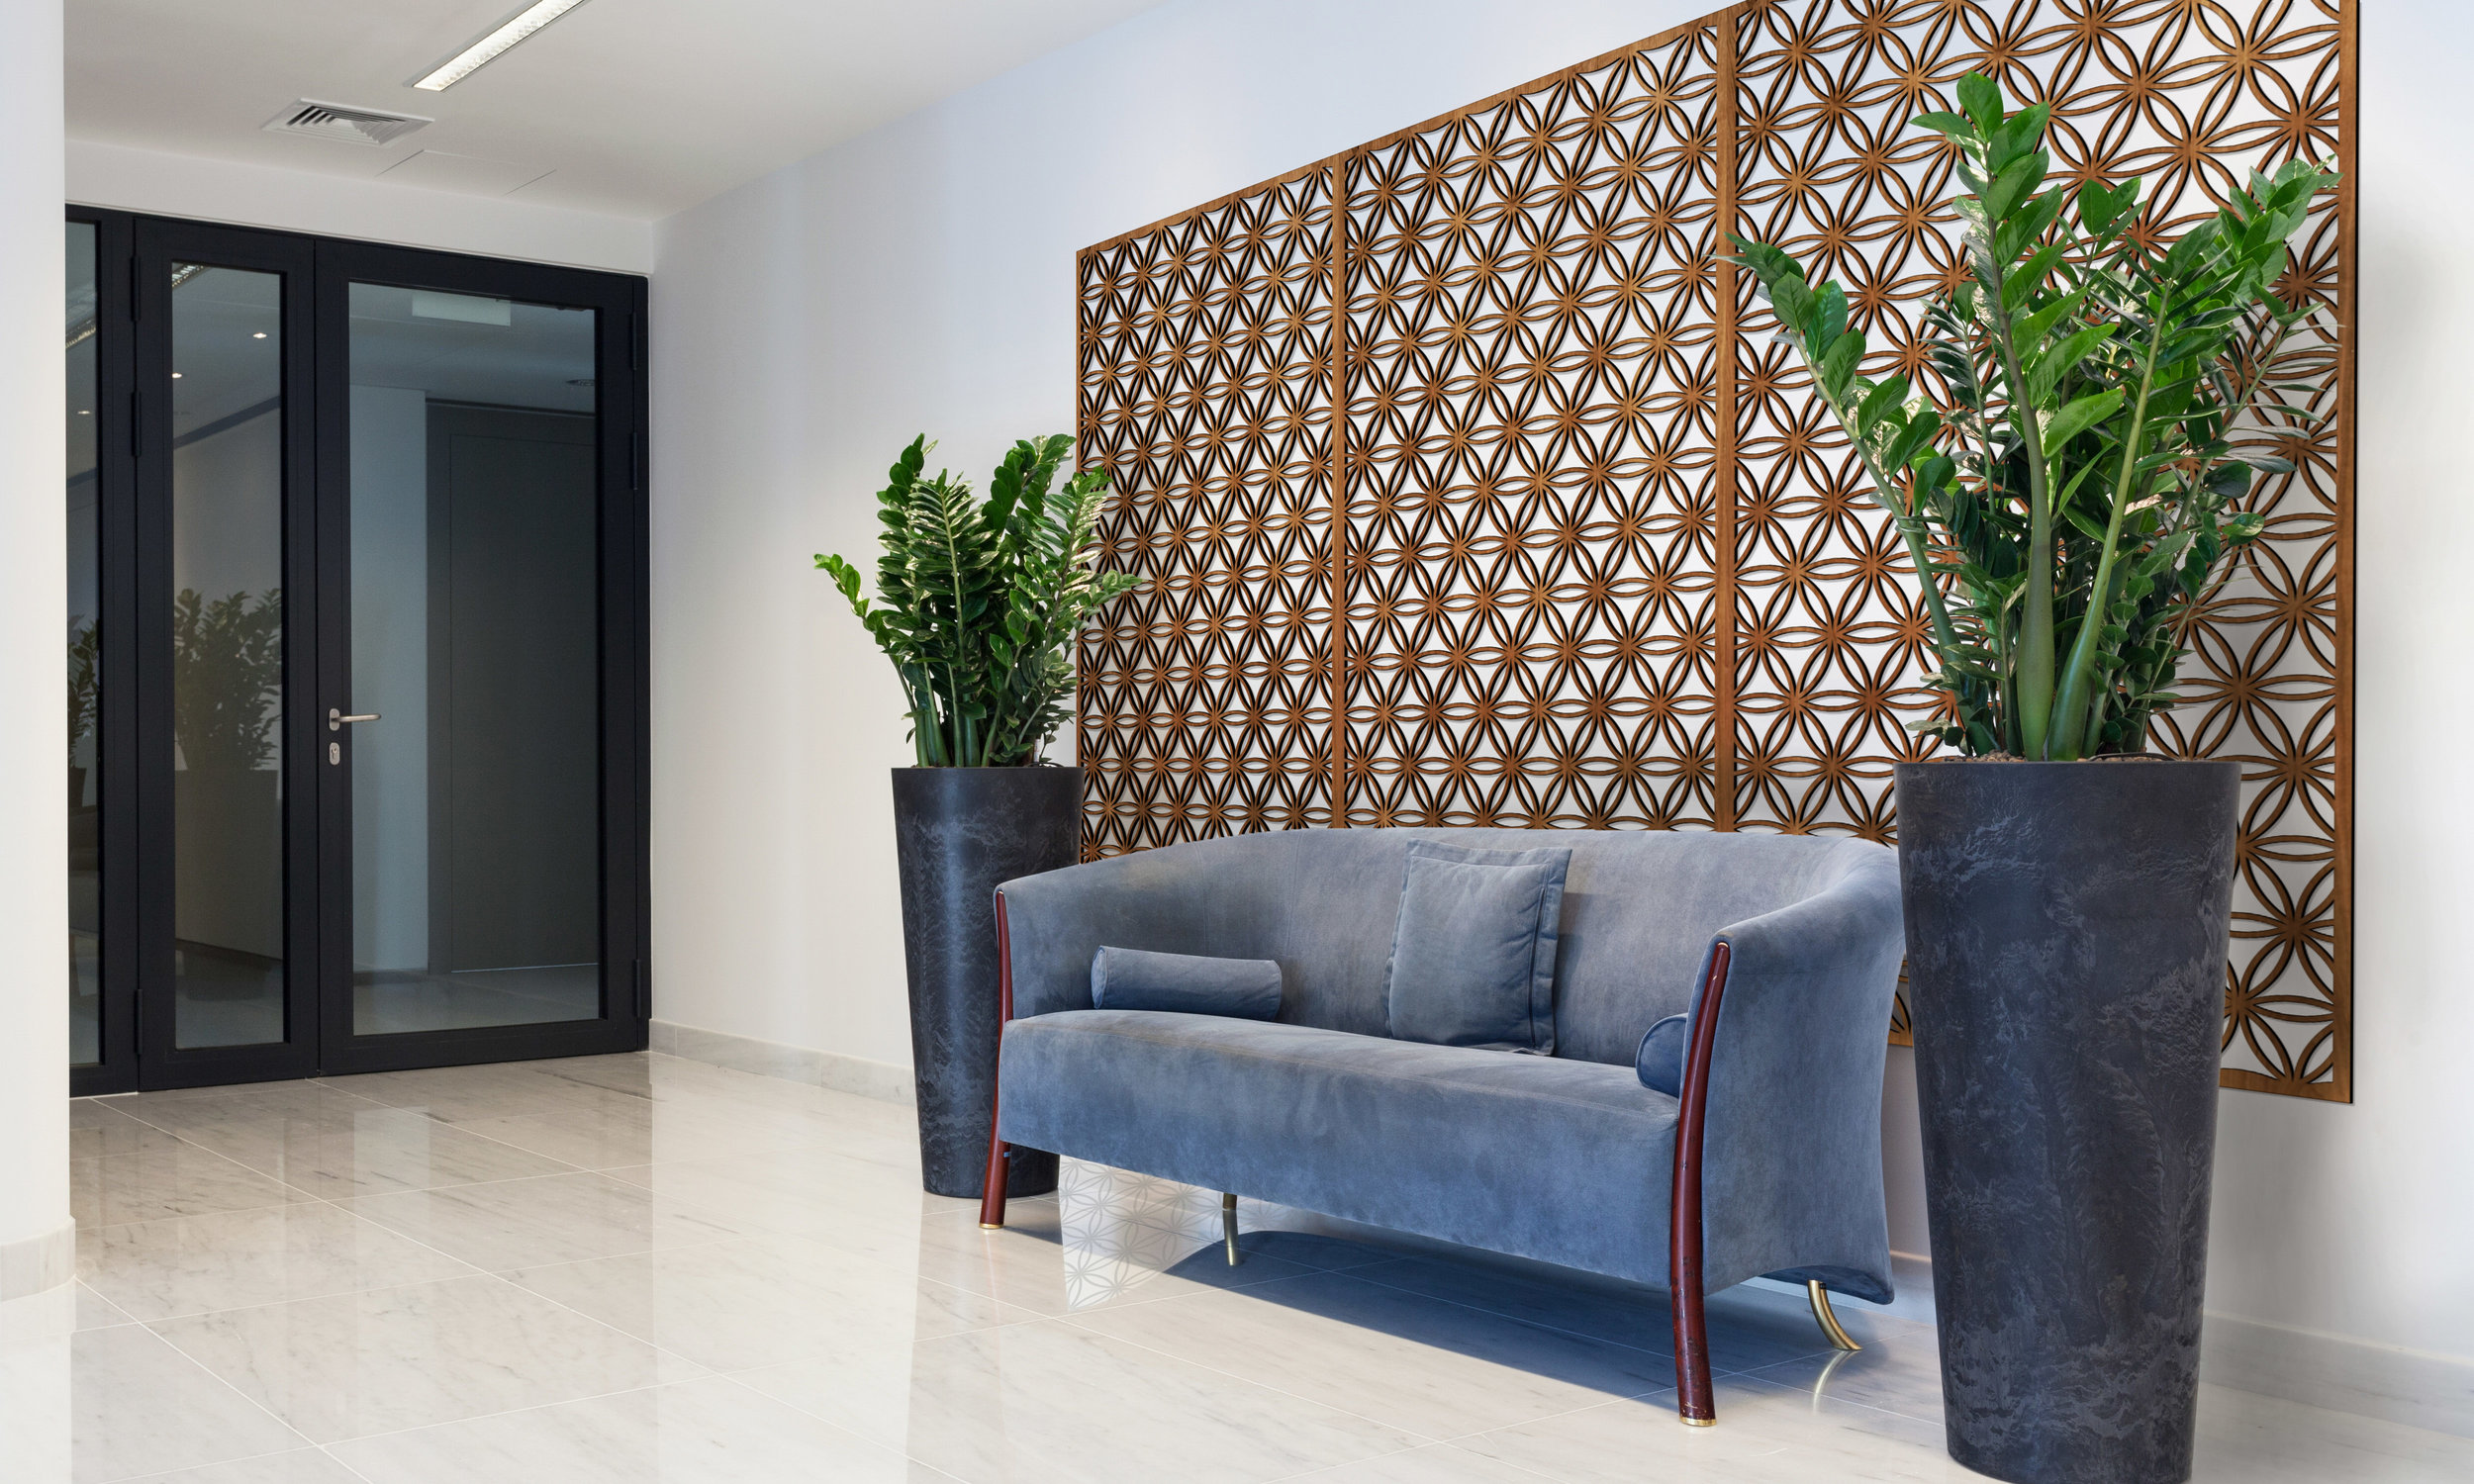 Installation Rendering A   Flower of Life decorative office wall panel - shown in Cherry